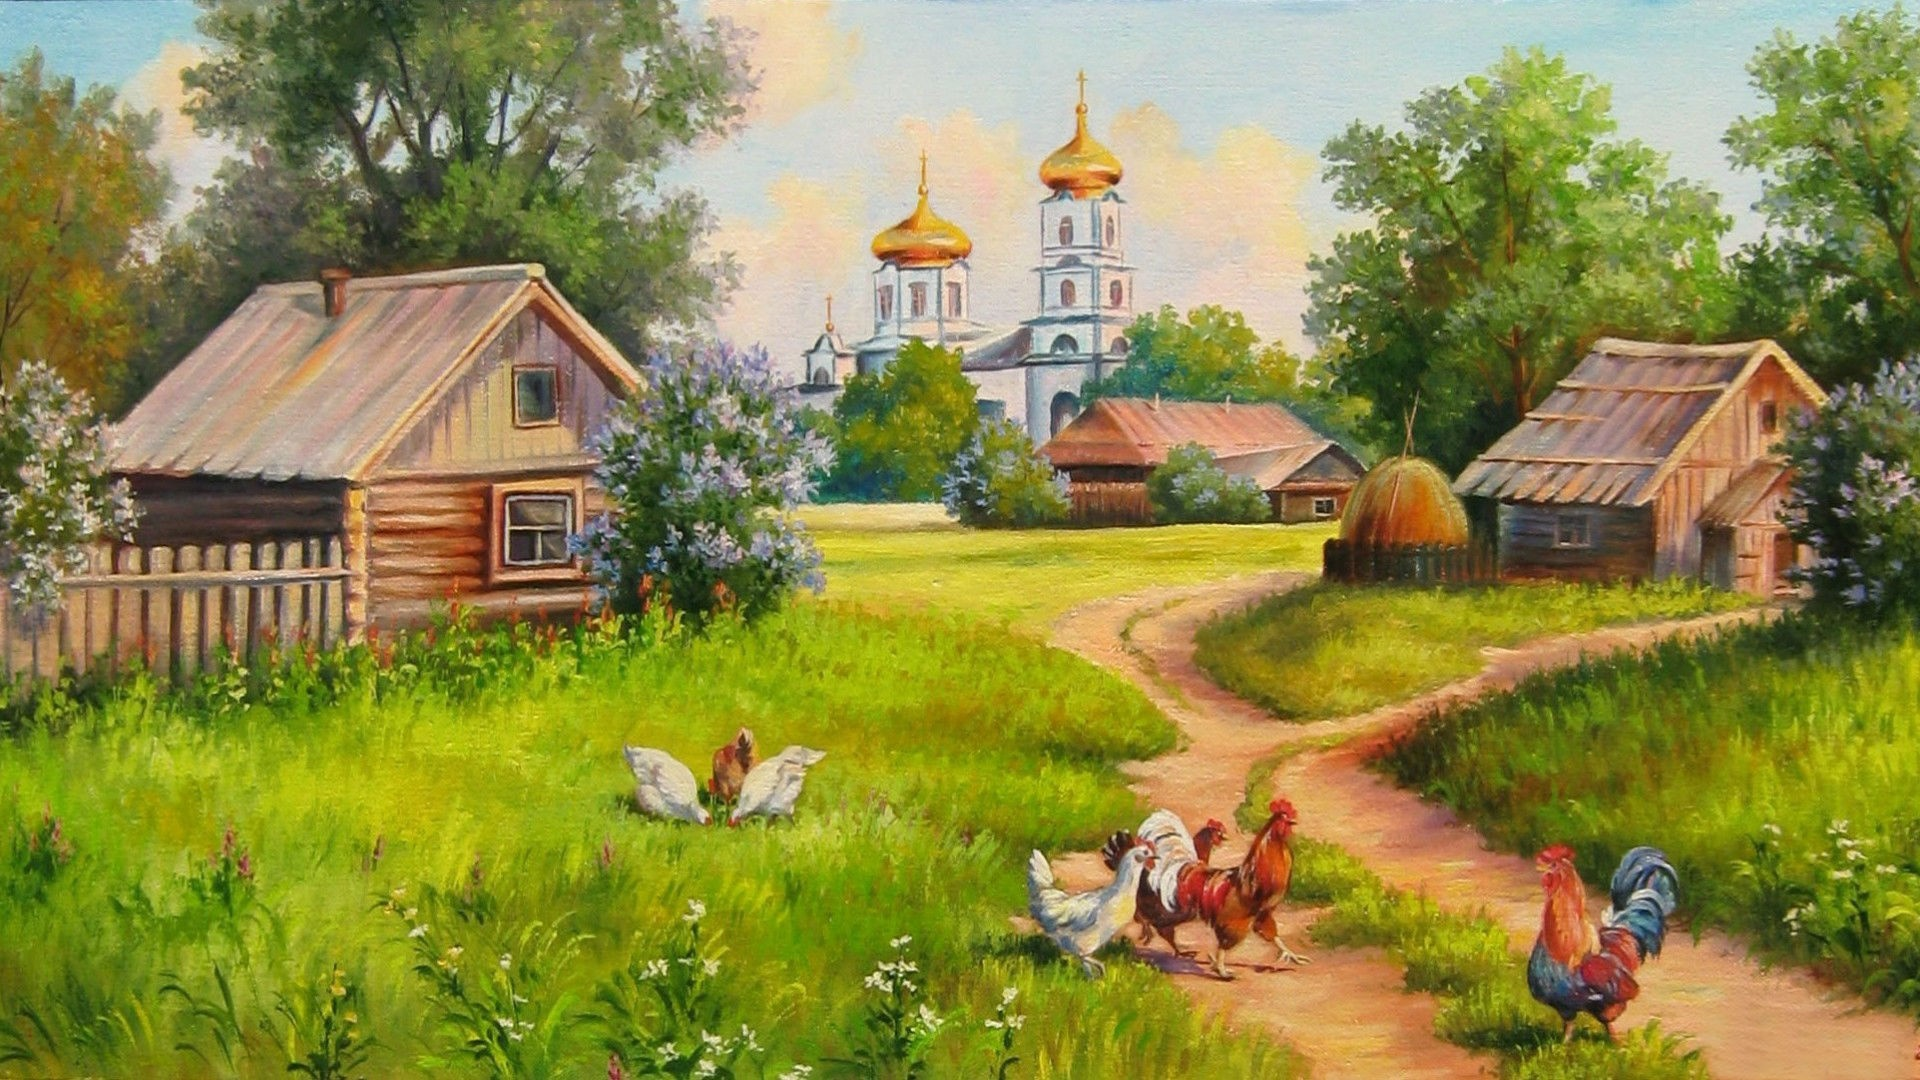 Village wallpaper wallpapersafari for Wallpapers for house wall in india